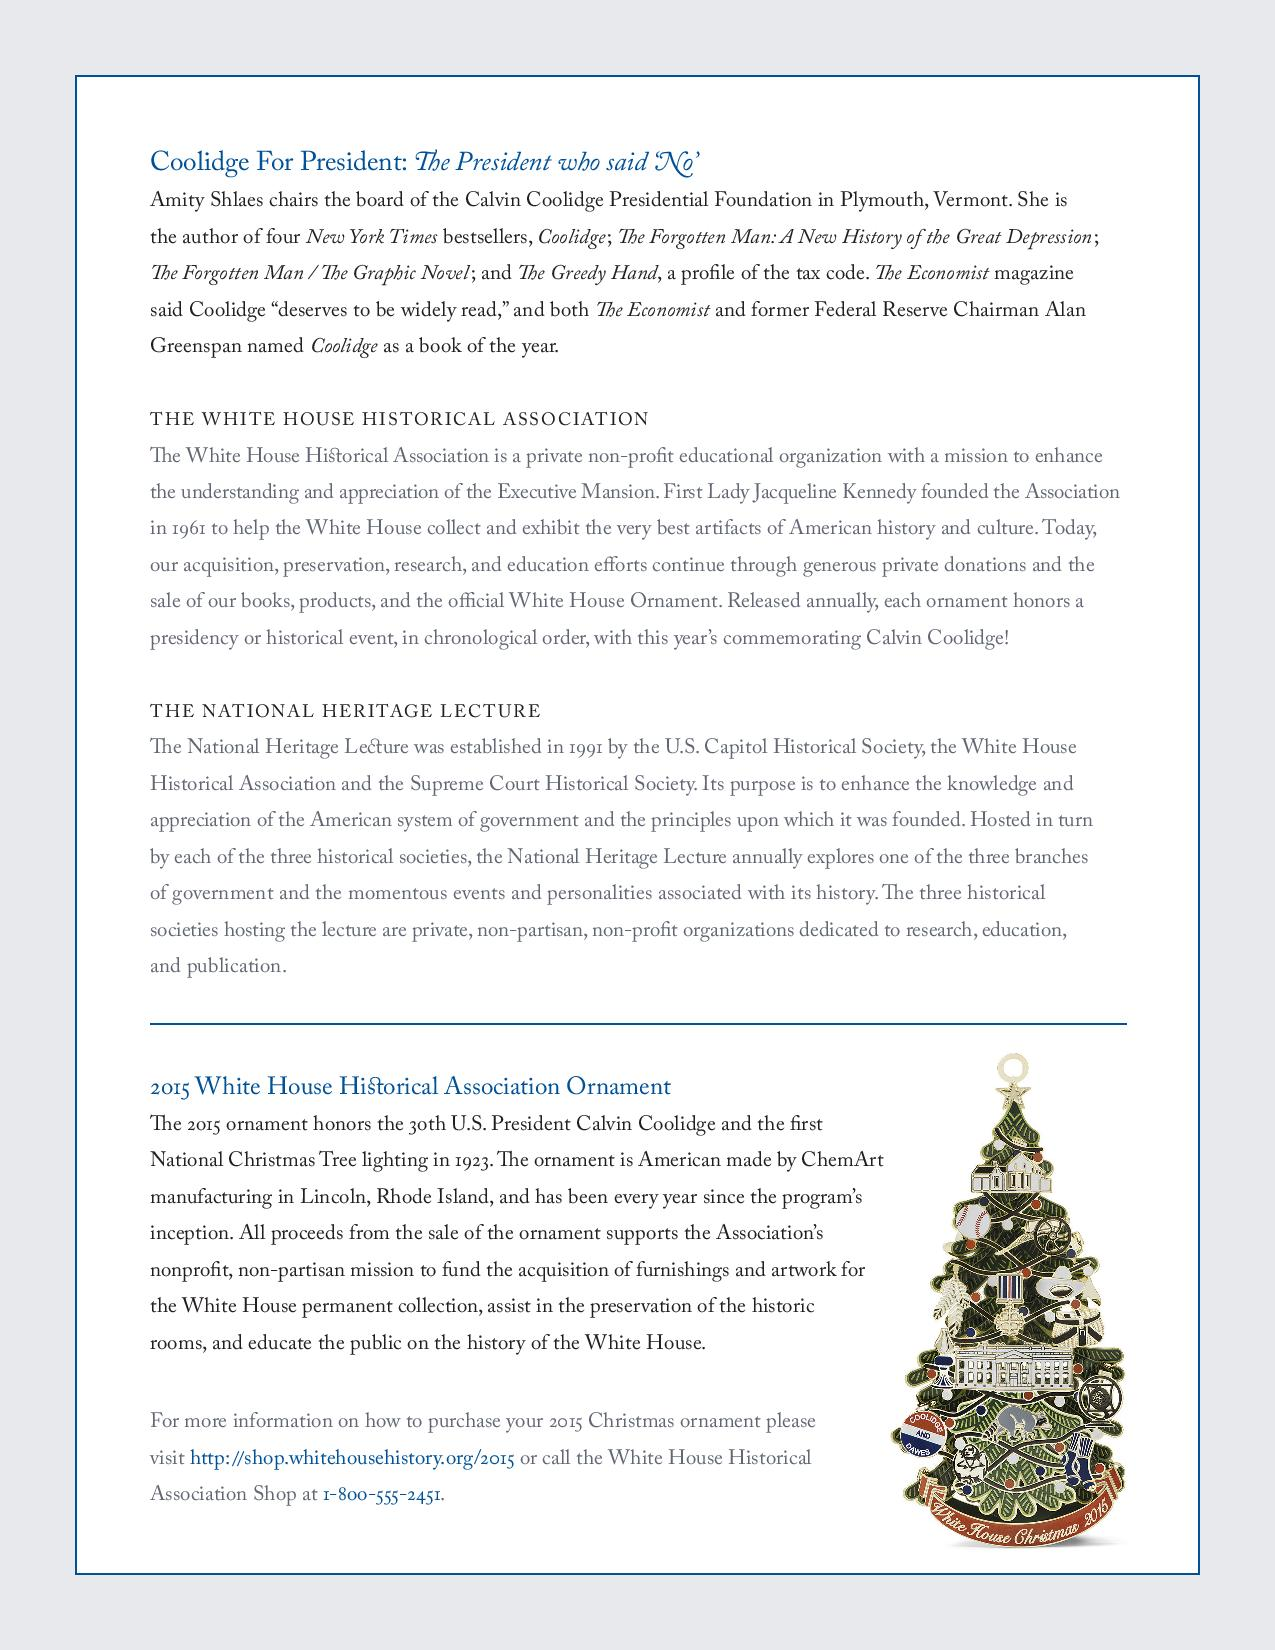 White house christmas ornaments historical society -  White House Historical Association Gift Shop During The Reception Nationalheritagelecture_invitation Page 002